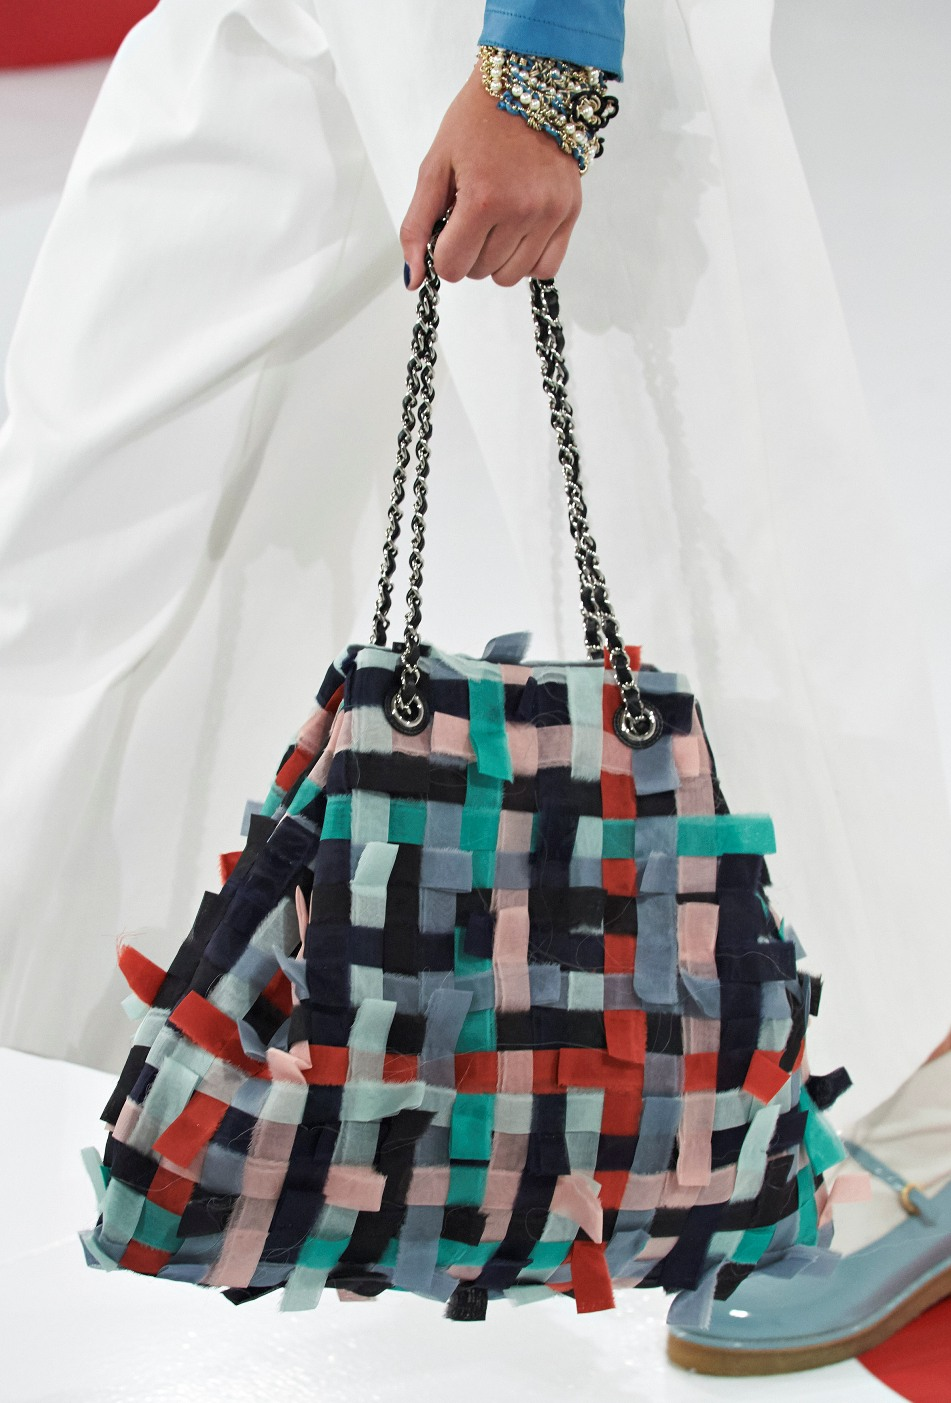 chanel-seoul-resort-cruise-2016-bags-accessories-11